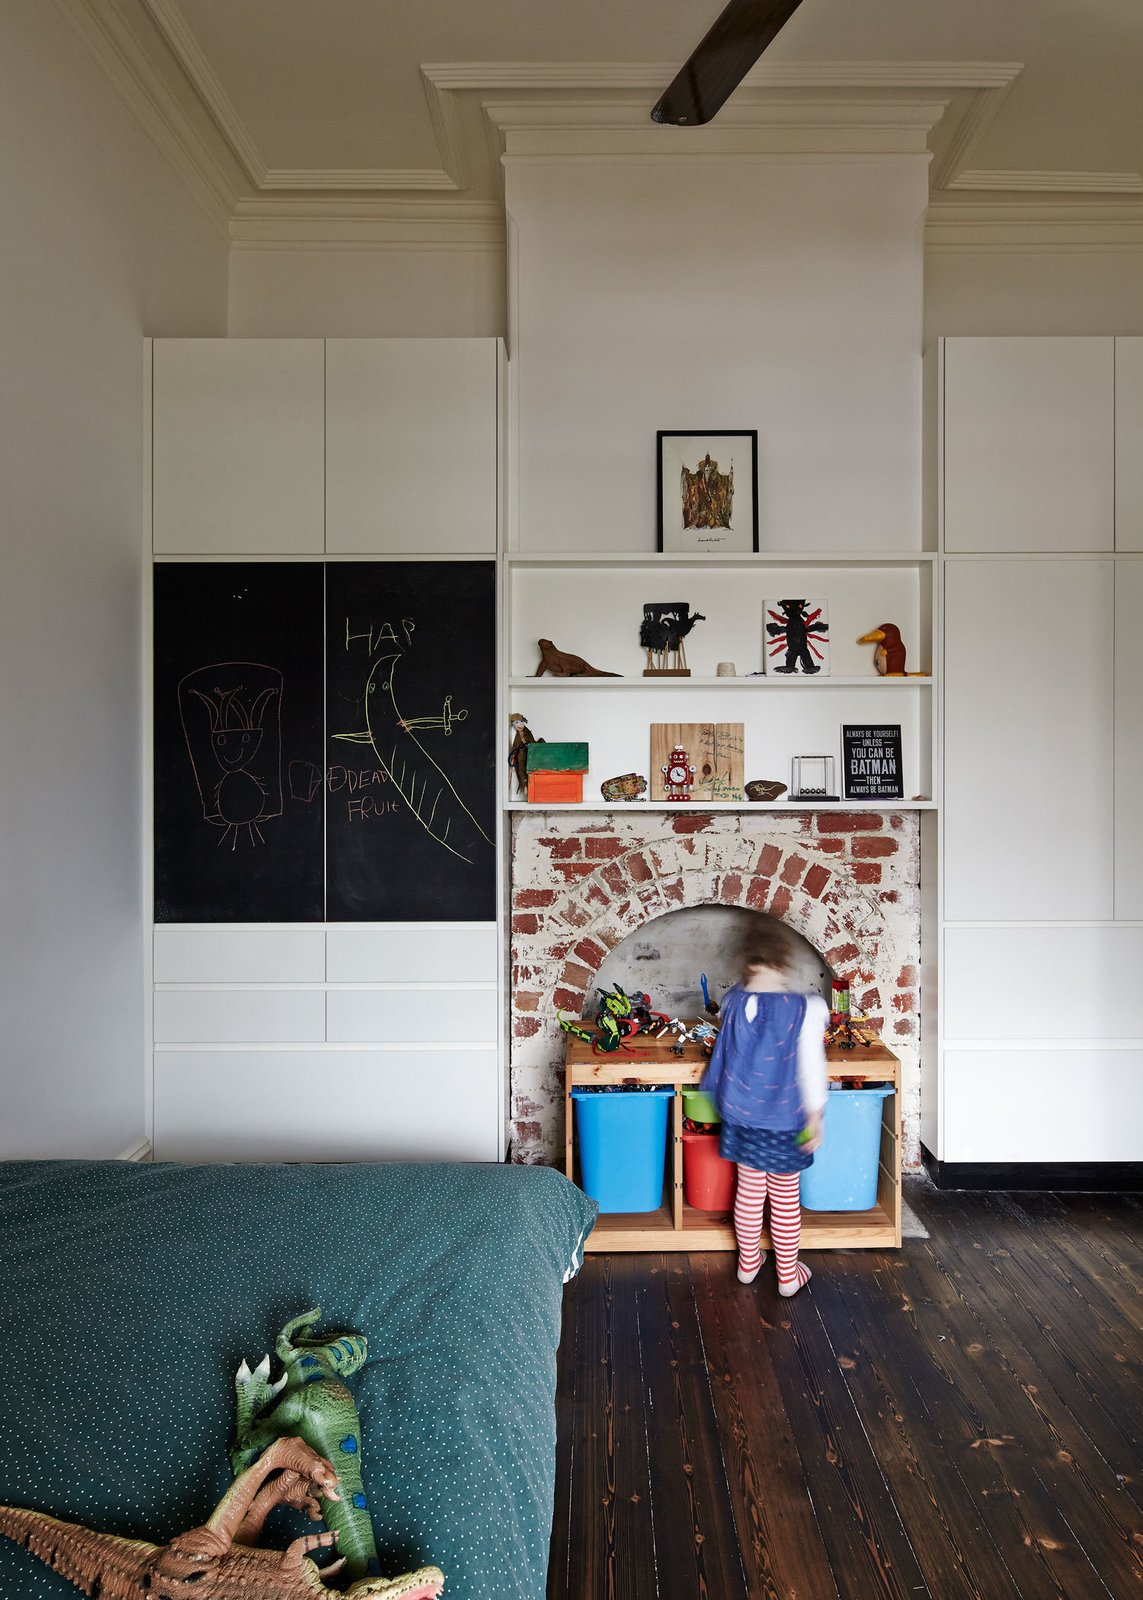 """The house's unique Victorian-era fireplaces had been obscured over the years with mock surrounds. The architects stripped them bare to """"reveal their materiality,"""" as Bright explains.  M House by Laura C. Mallonee"""